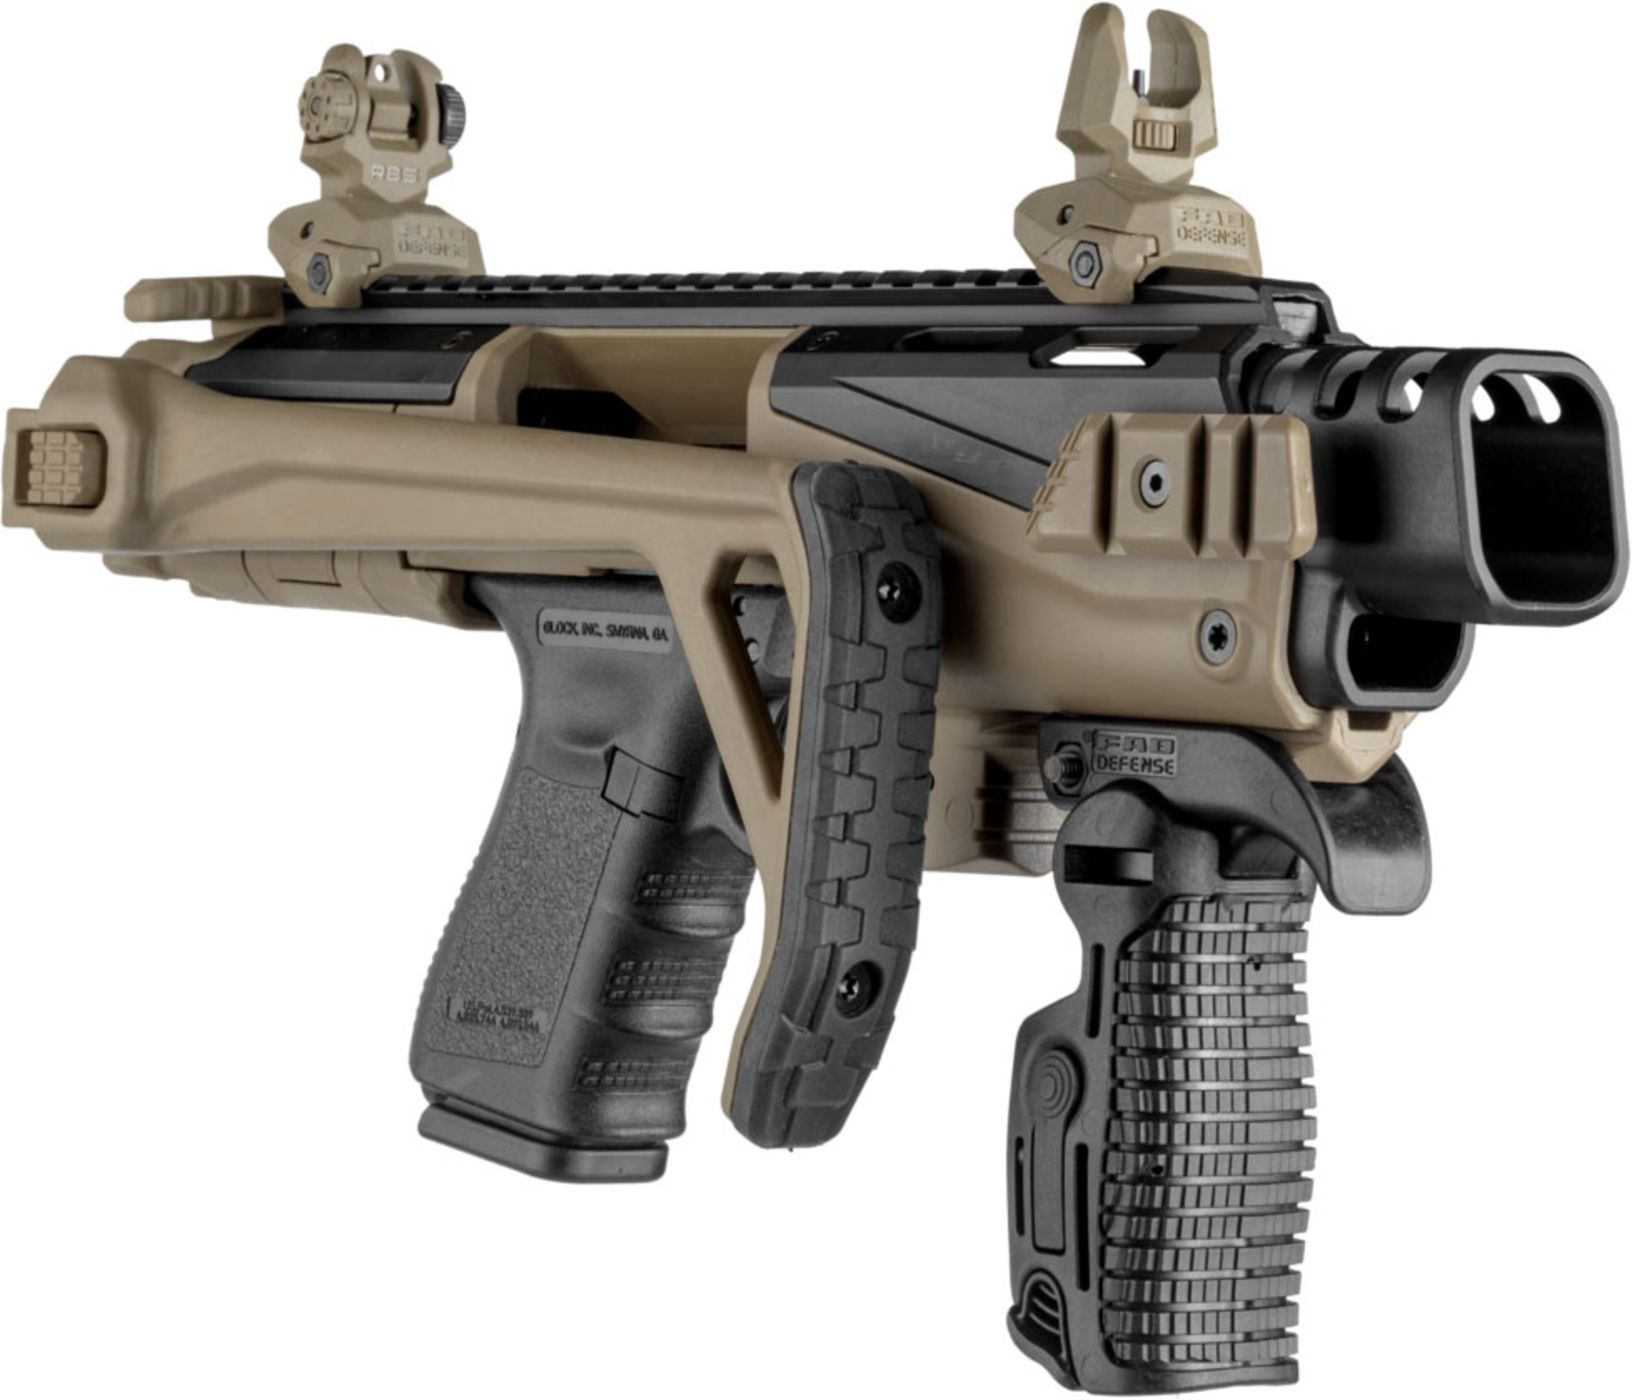 FAB Defense KPOS Scout Pistol Conversion Kit for Glock 17/19  BLK/FDE/GRY/ODG - $205